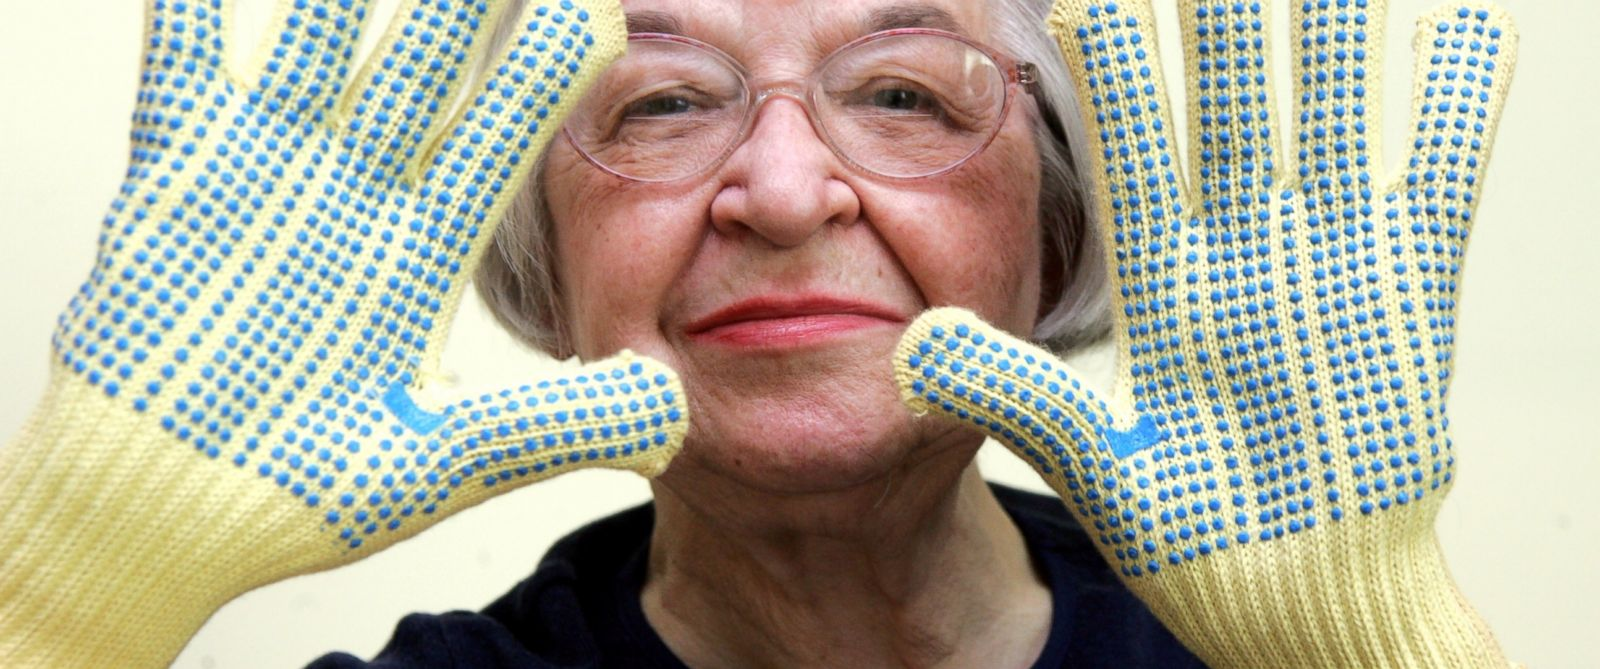 PHOTO: Stephanie Kwolek, 83, shown in this June 20, 2007 file photo taken in Brandywine Hundred, Del., wears regular house gloves made with the Kevlar she invented.